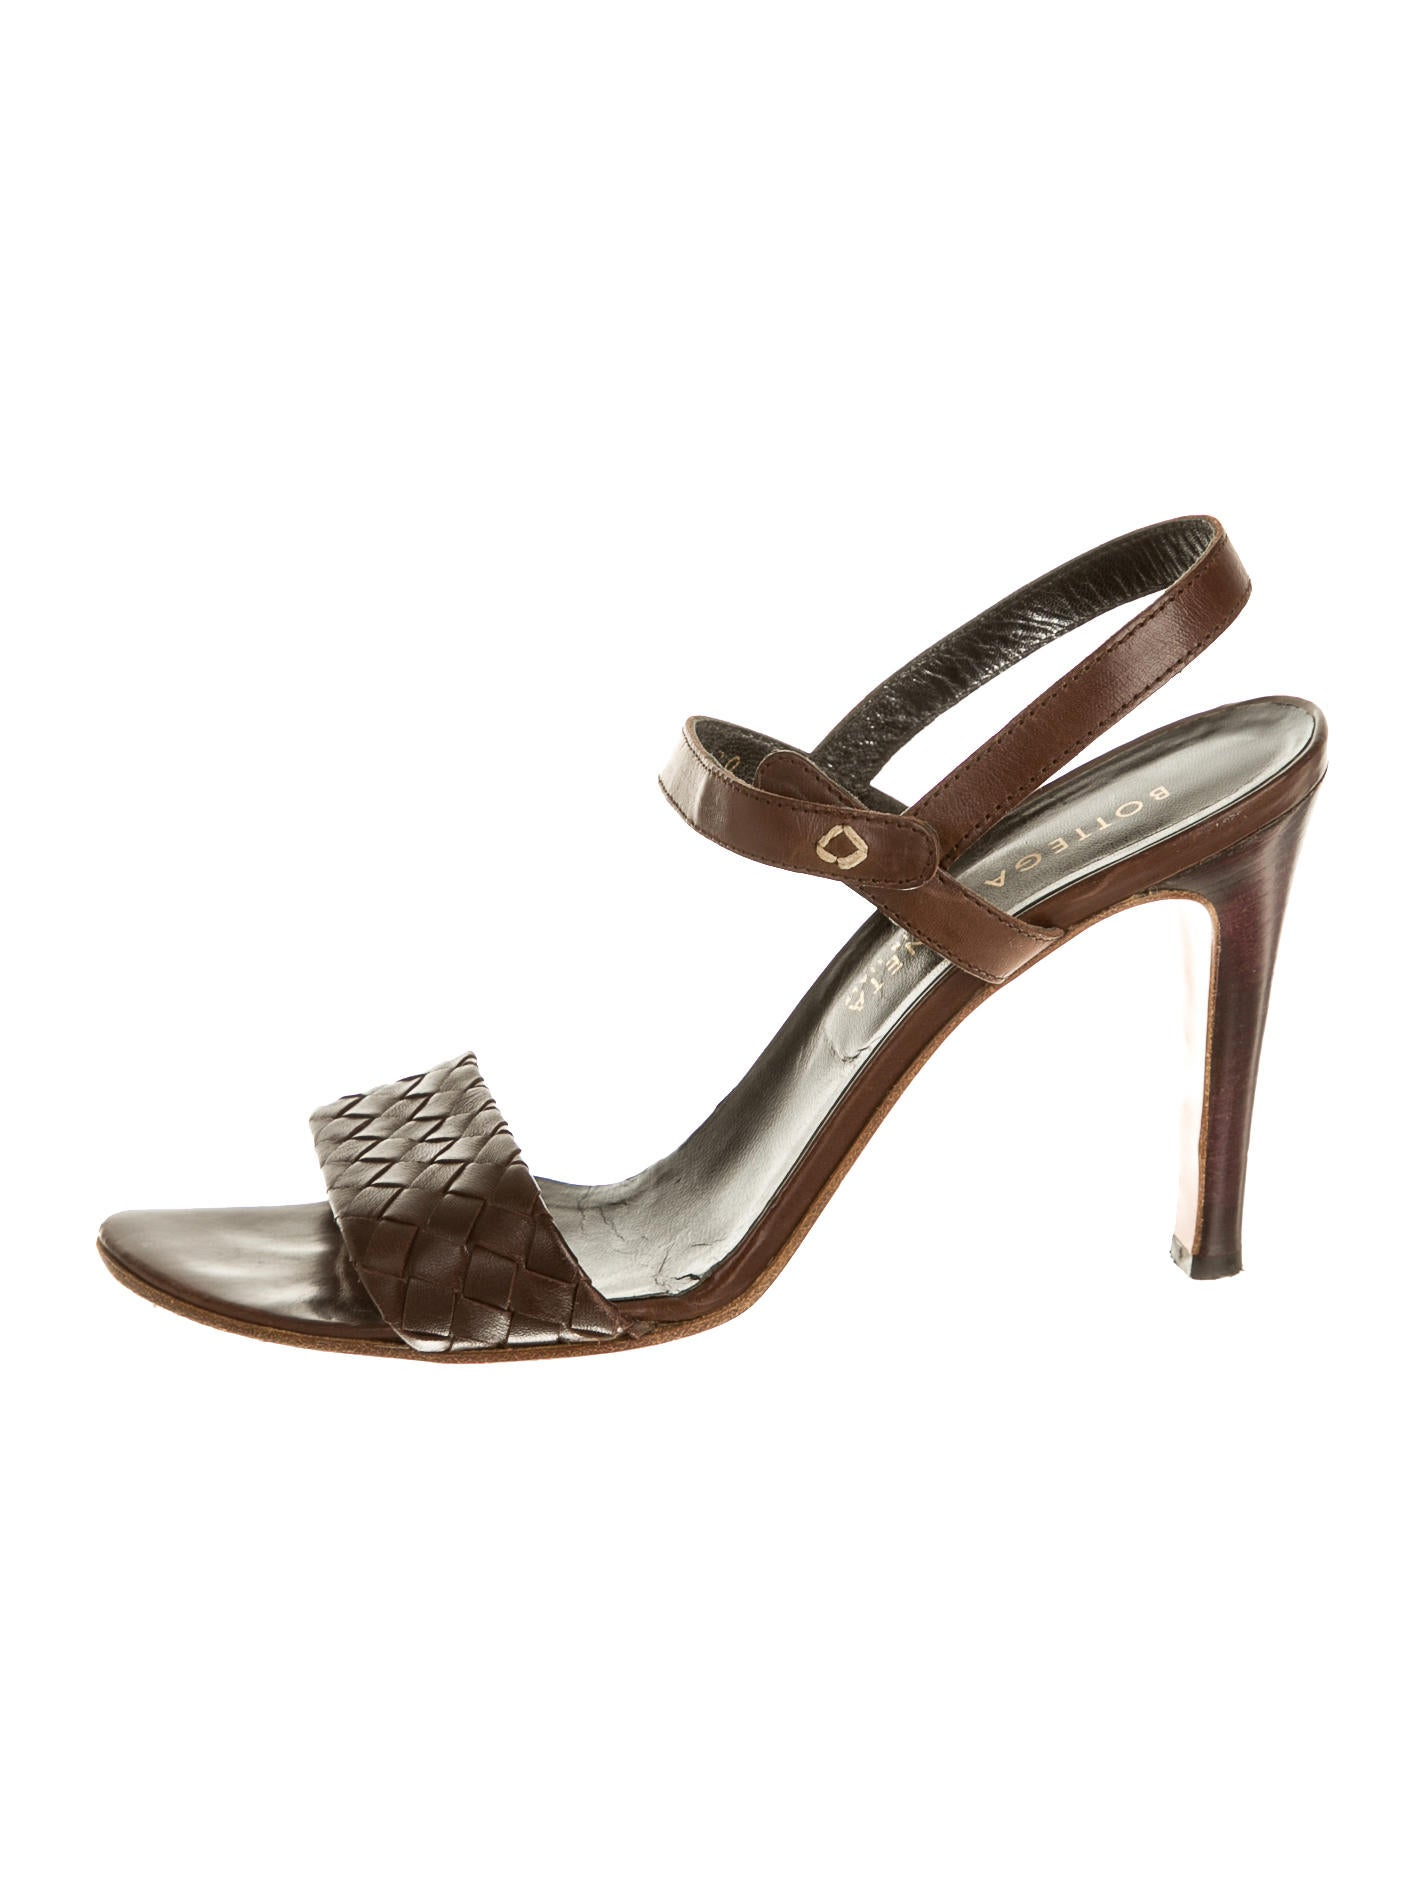 Brilliant Bottega Veneta Sandals